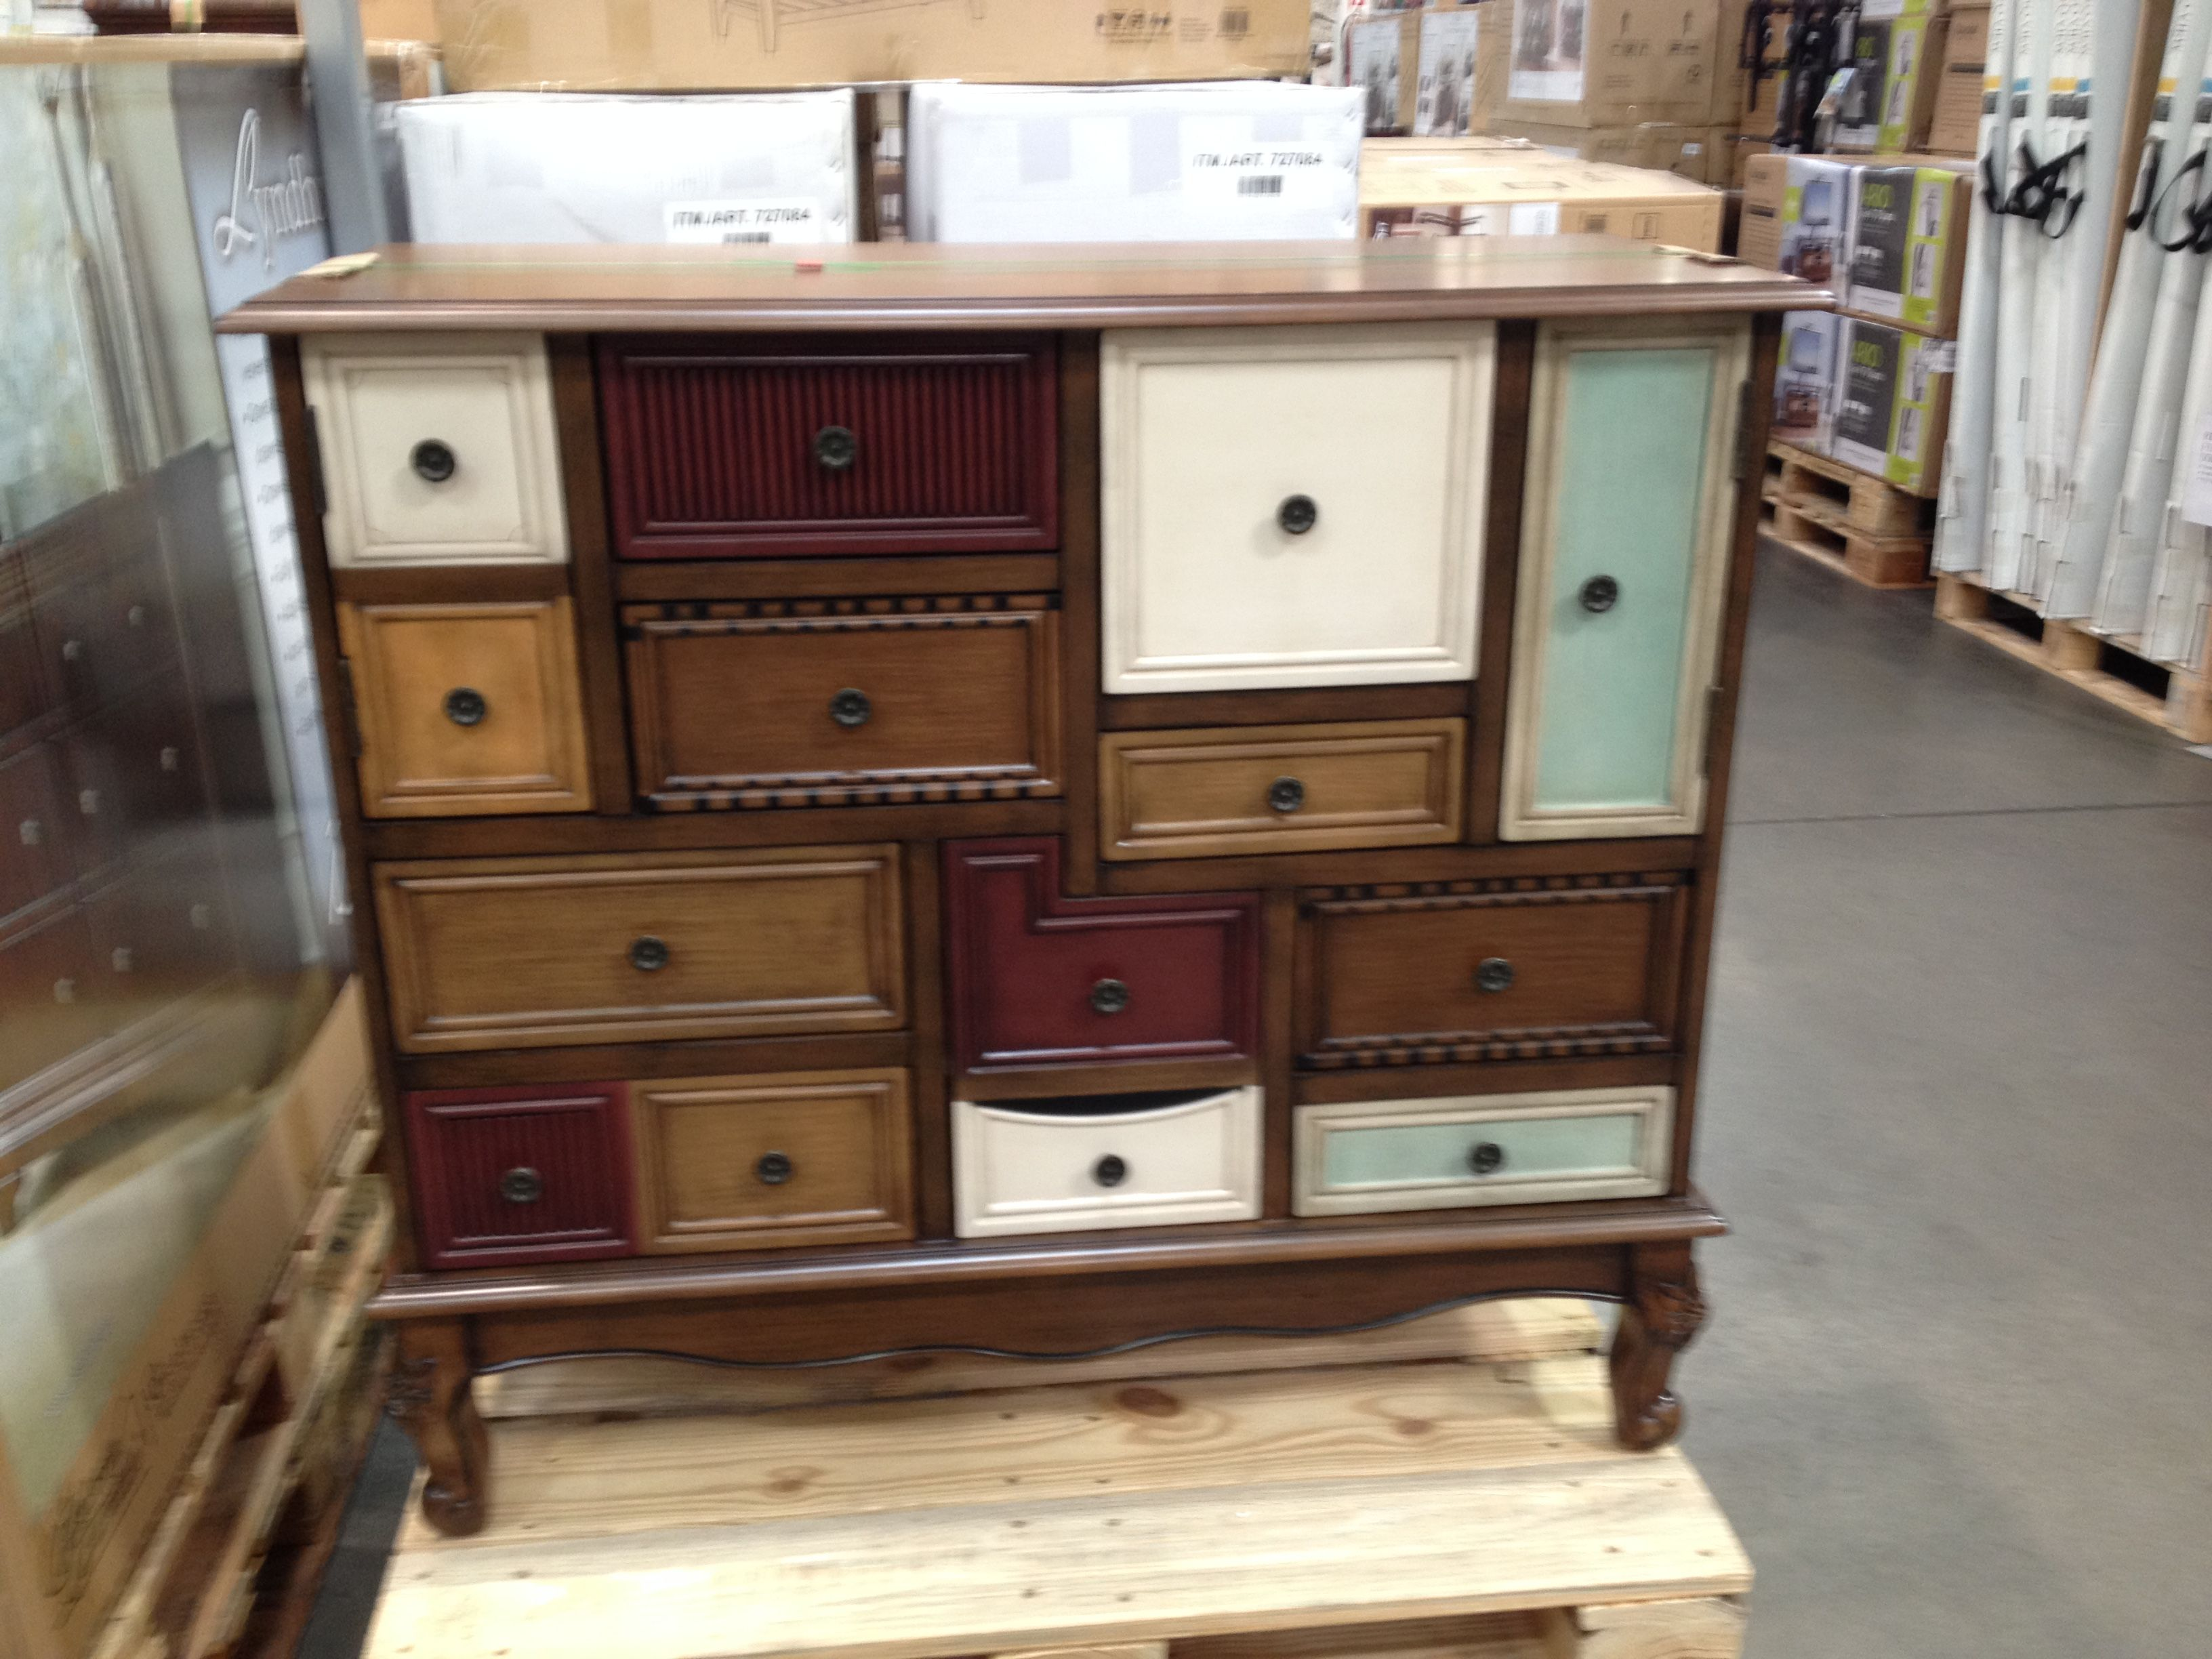 cabinets barn styles wooden chic in interior pottery file and antique cabinet costco wood drawer modern classic